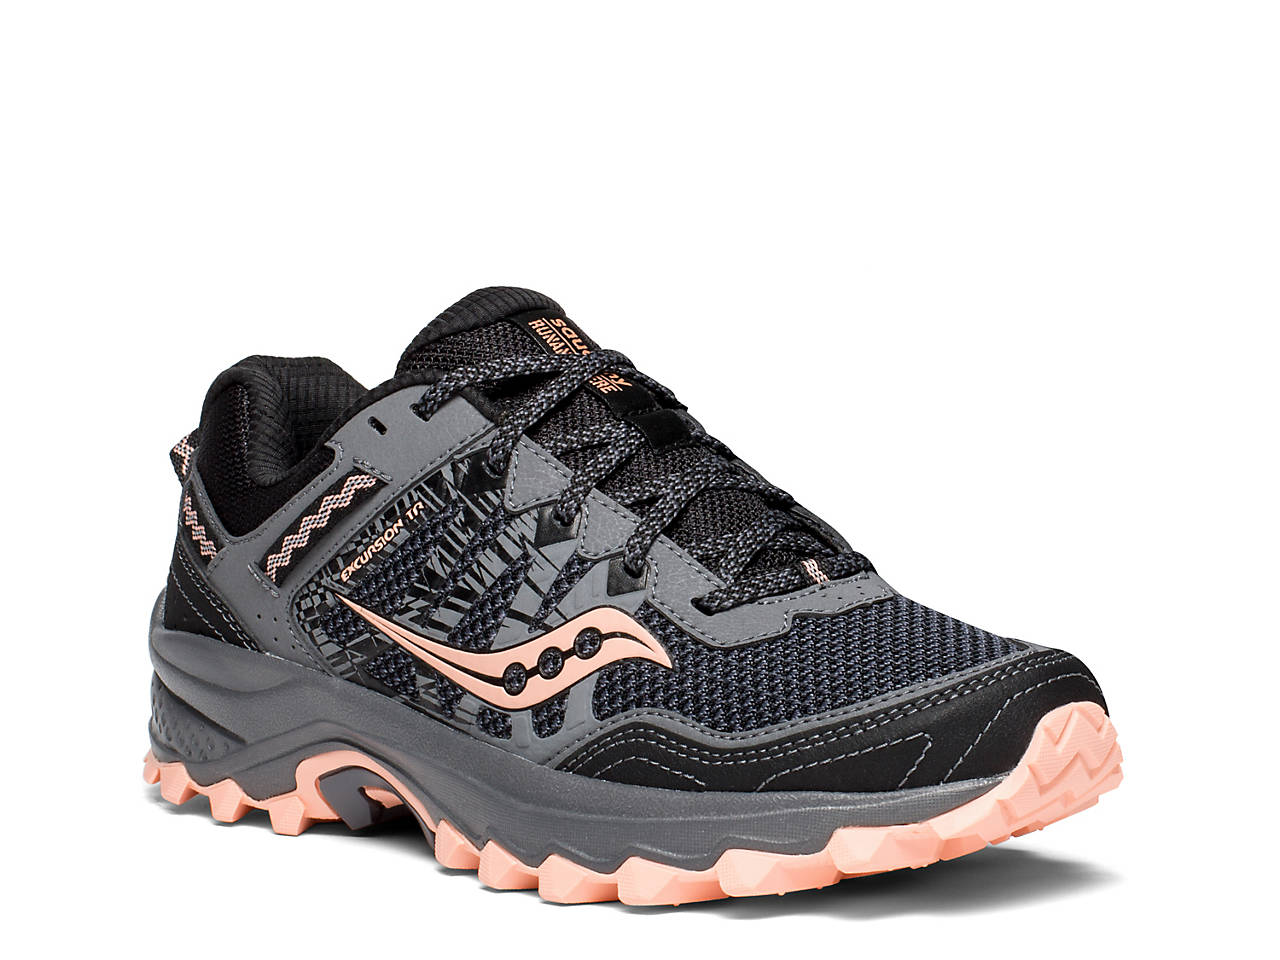 Trail Running: Saucony De las mujeres Grid Excursion TR 3 Running